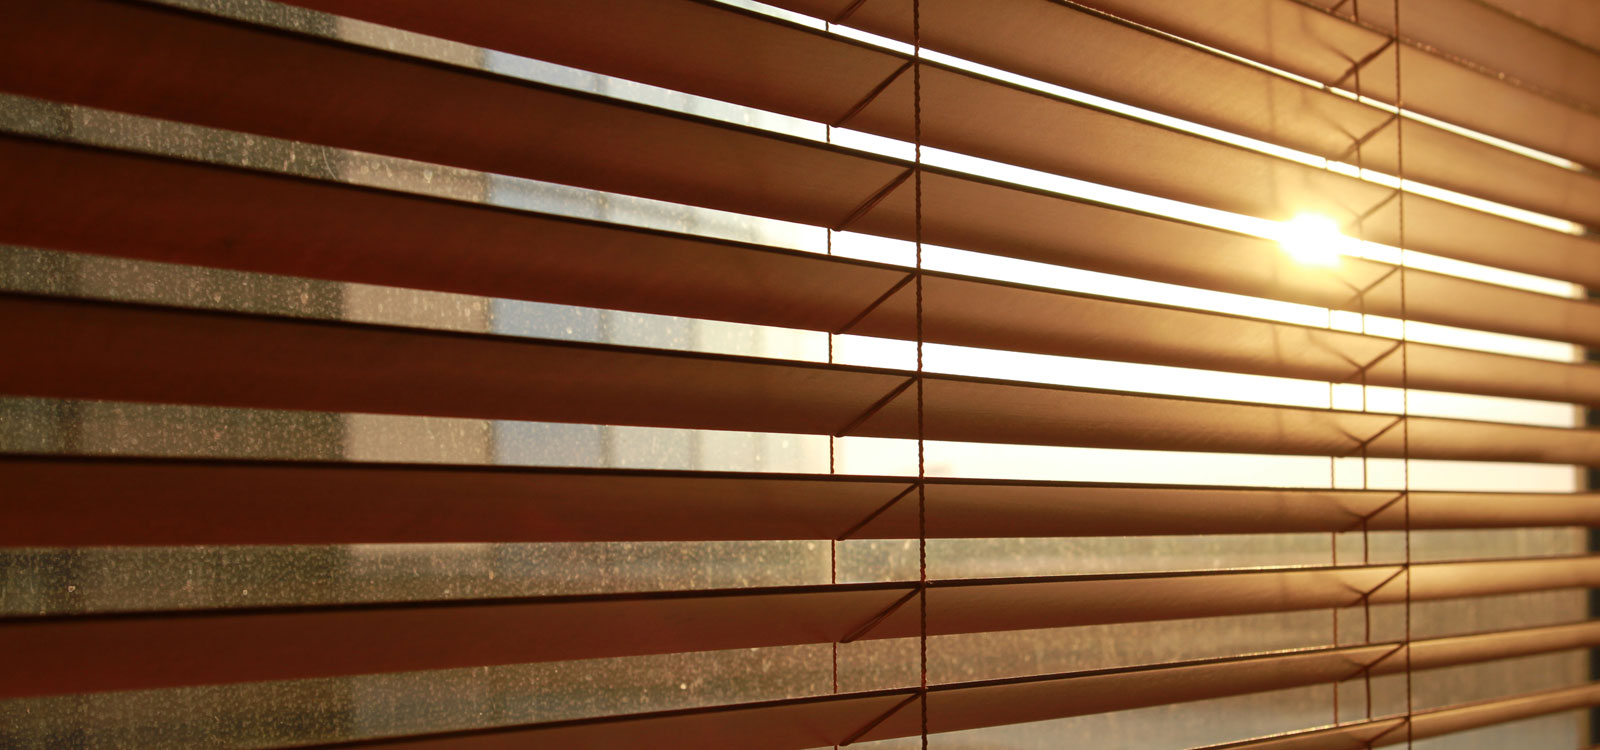 Wake up the way you want to Blended Blinds custom blinds